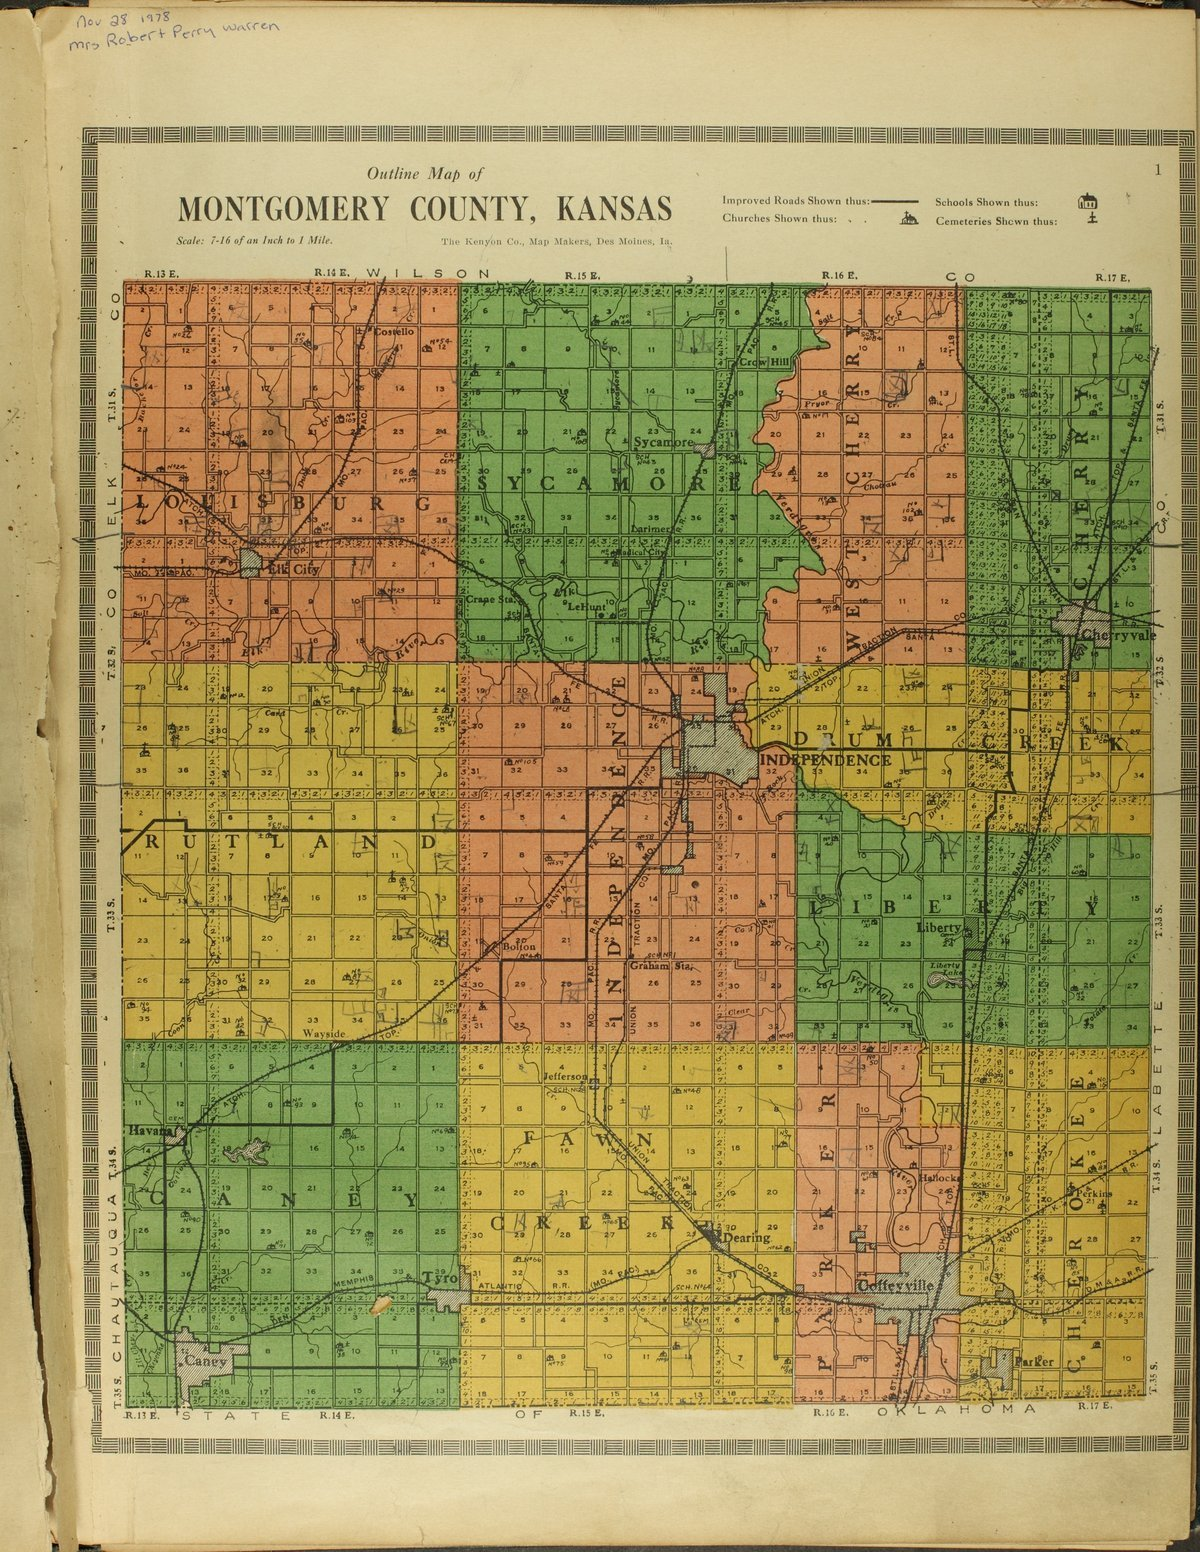 Atlas and plat book of Montgomery County, Kansas - 1